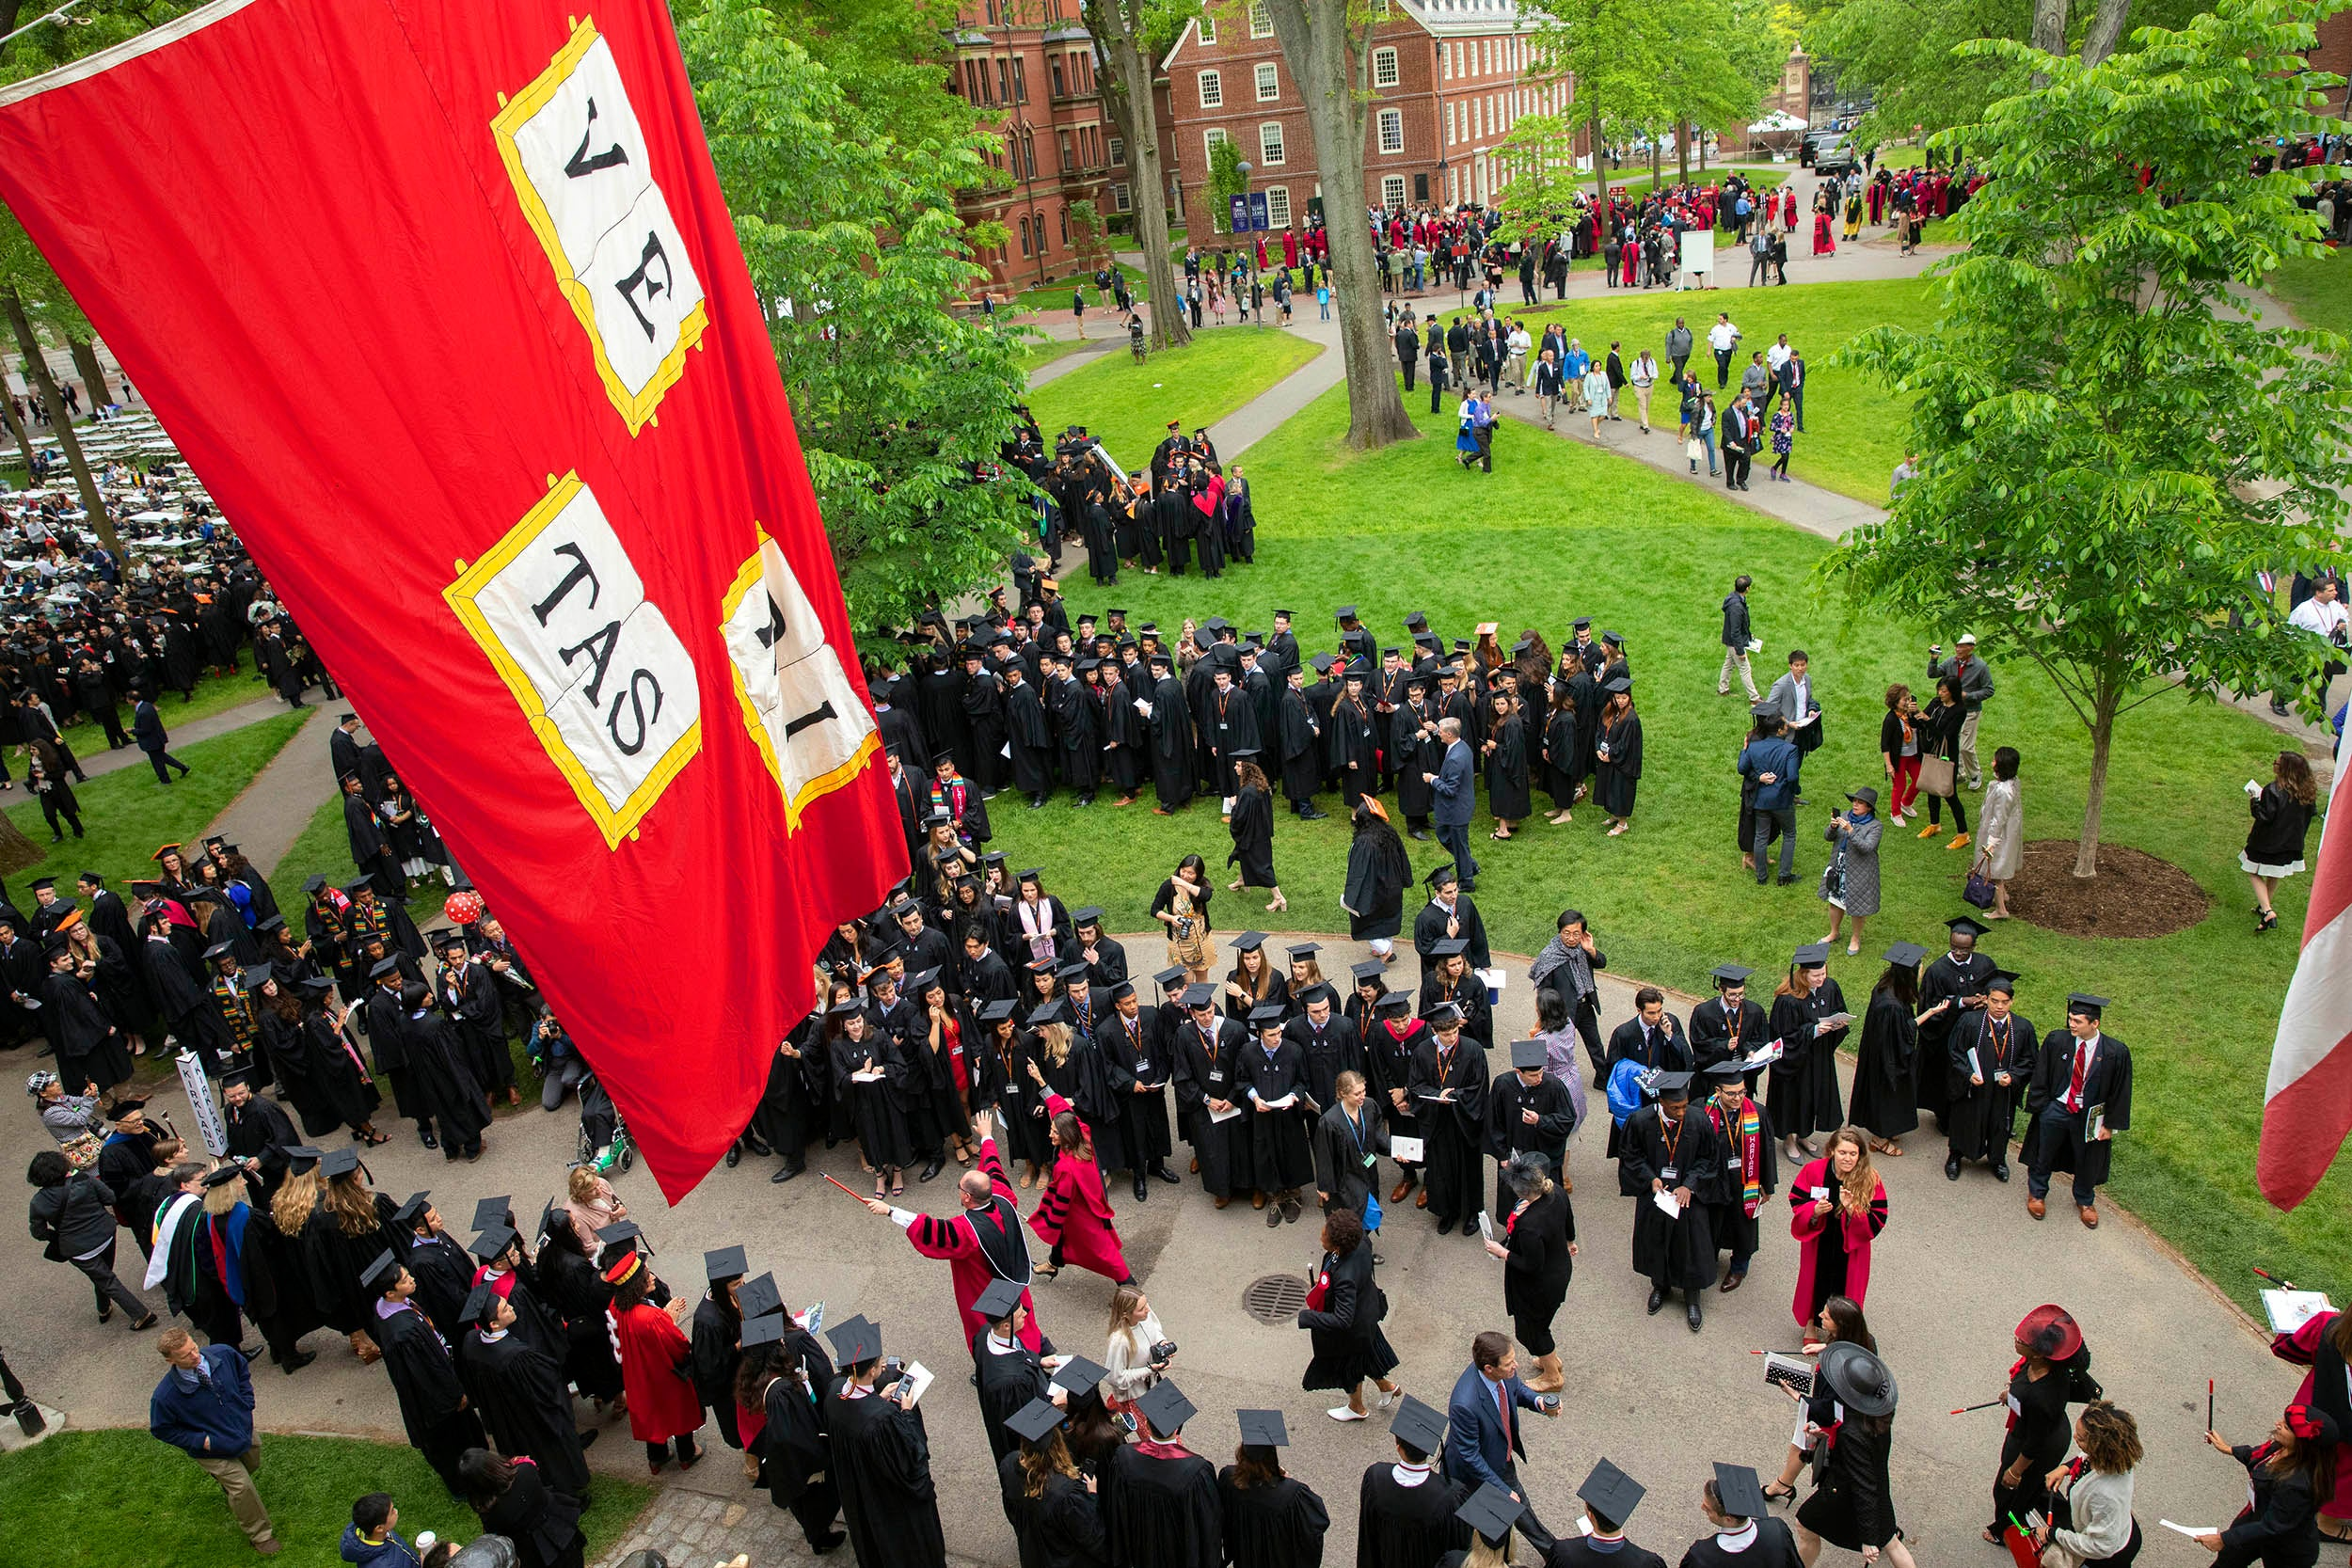 Seniors process past the John Harvard Statue and under the Veritas flag.